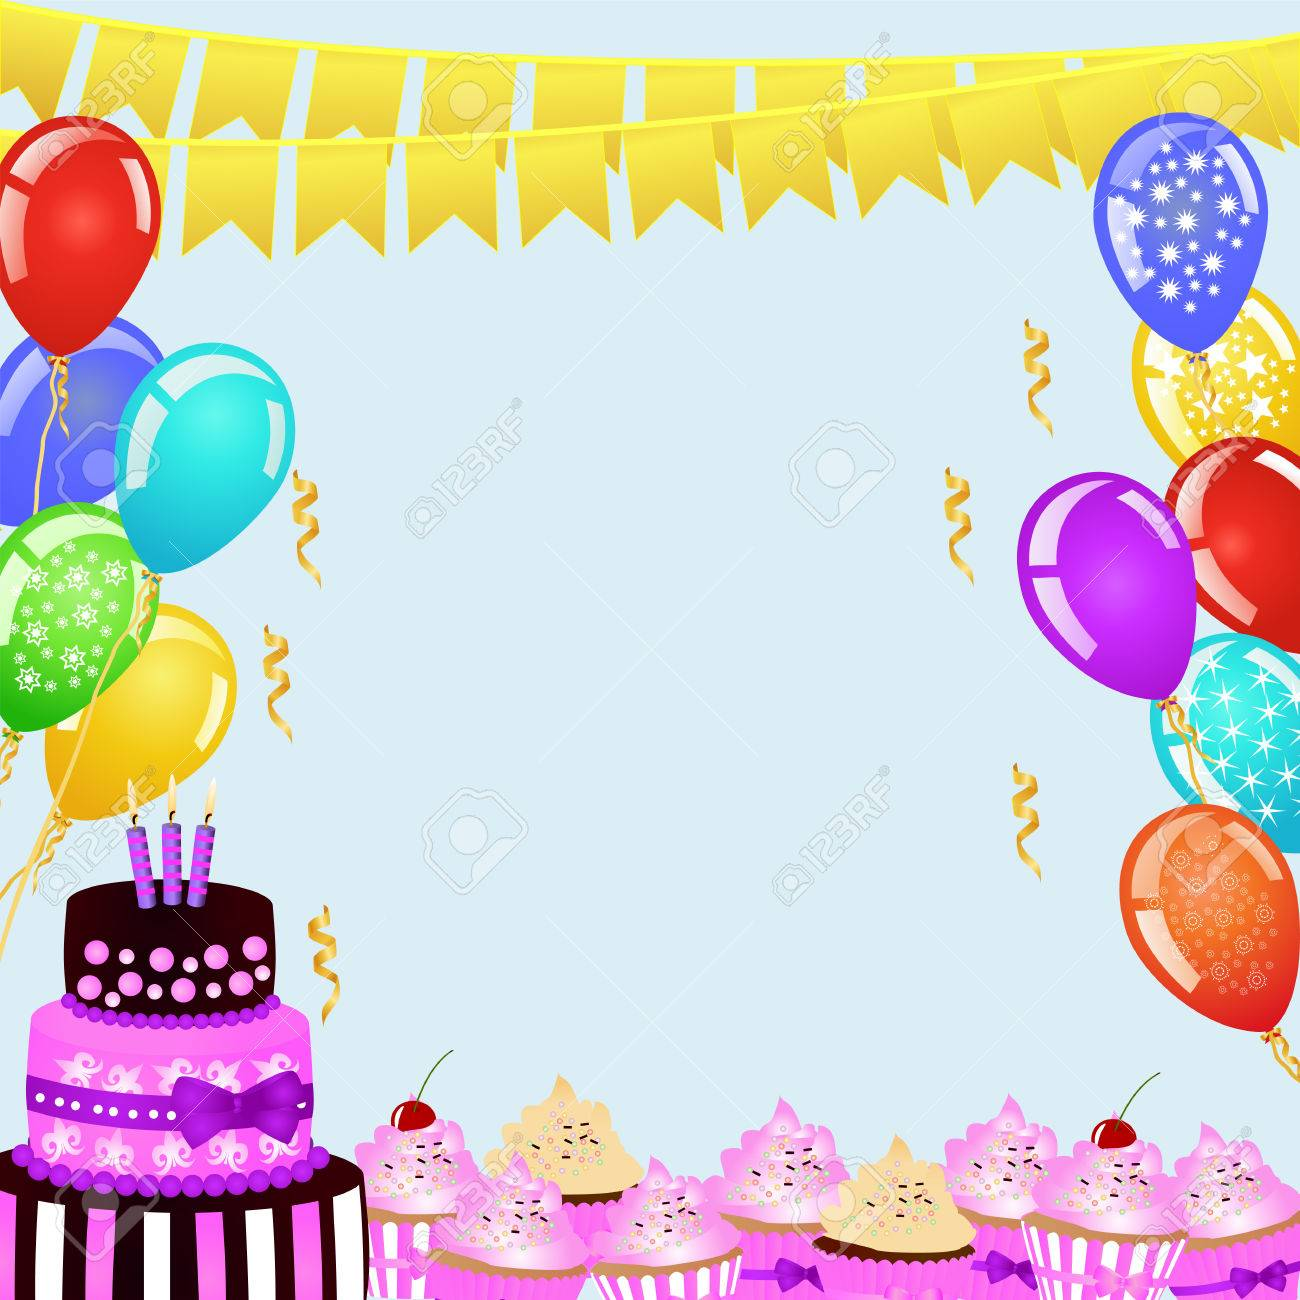 birthday border design ; 55410239-birthday-party-background-with-bunting-flags-balloons-birthday-cake-and-cupcakes-birthday-border-for